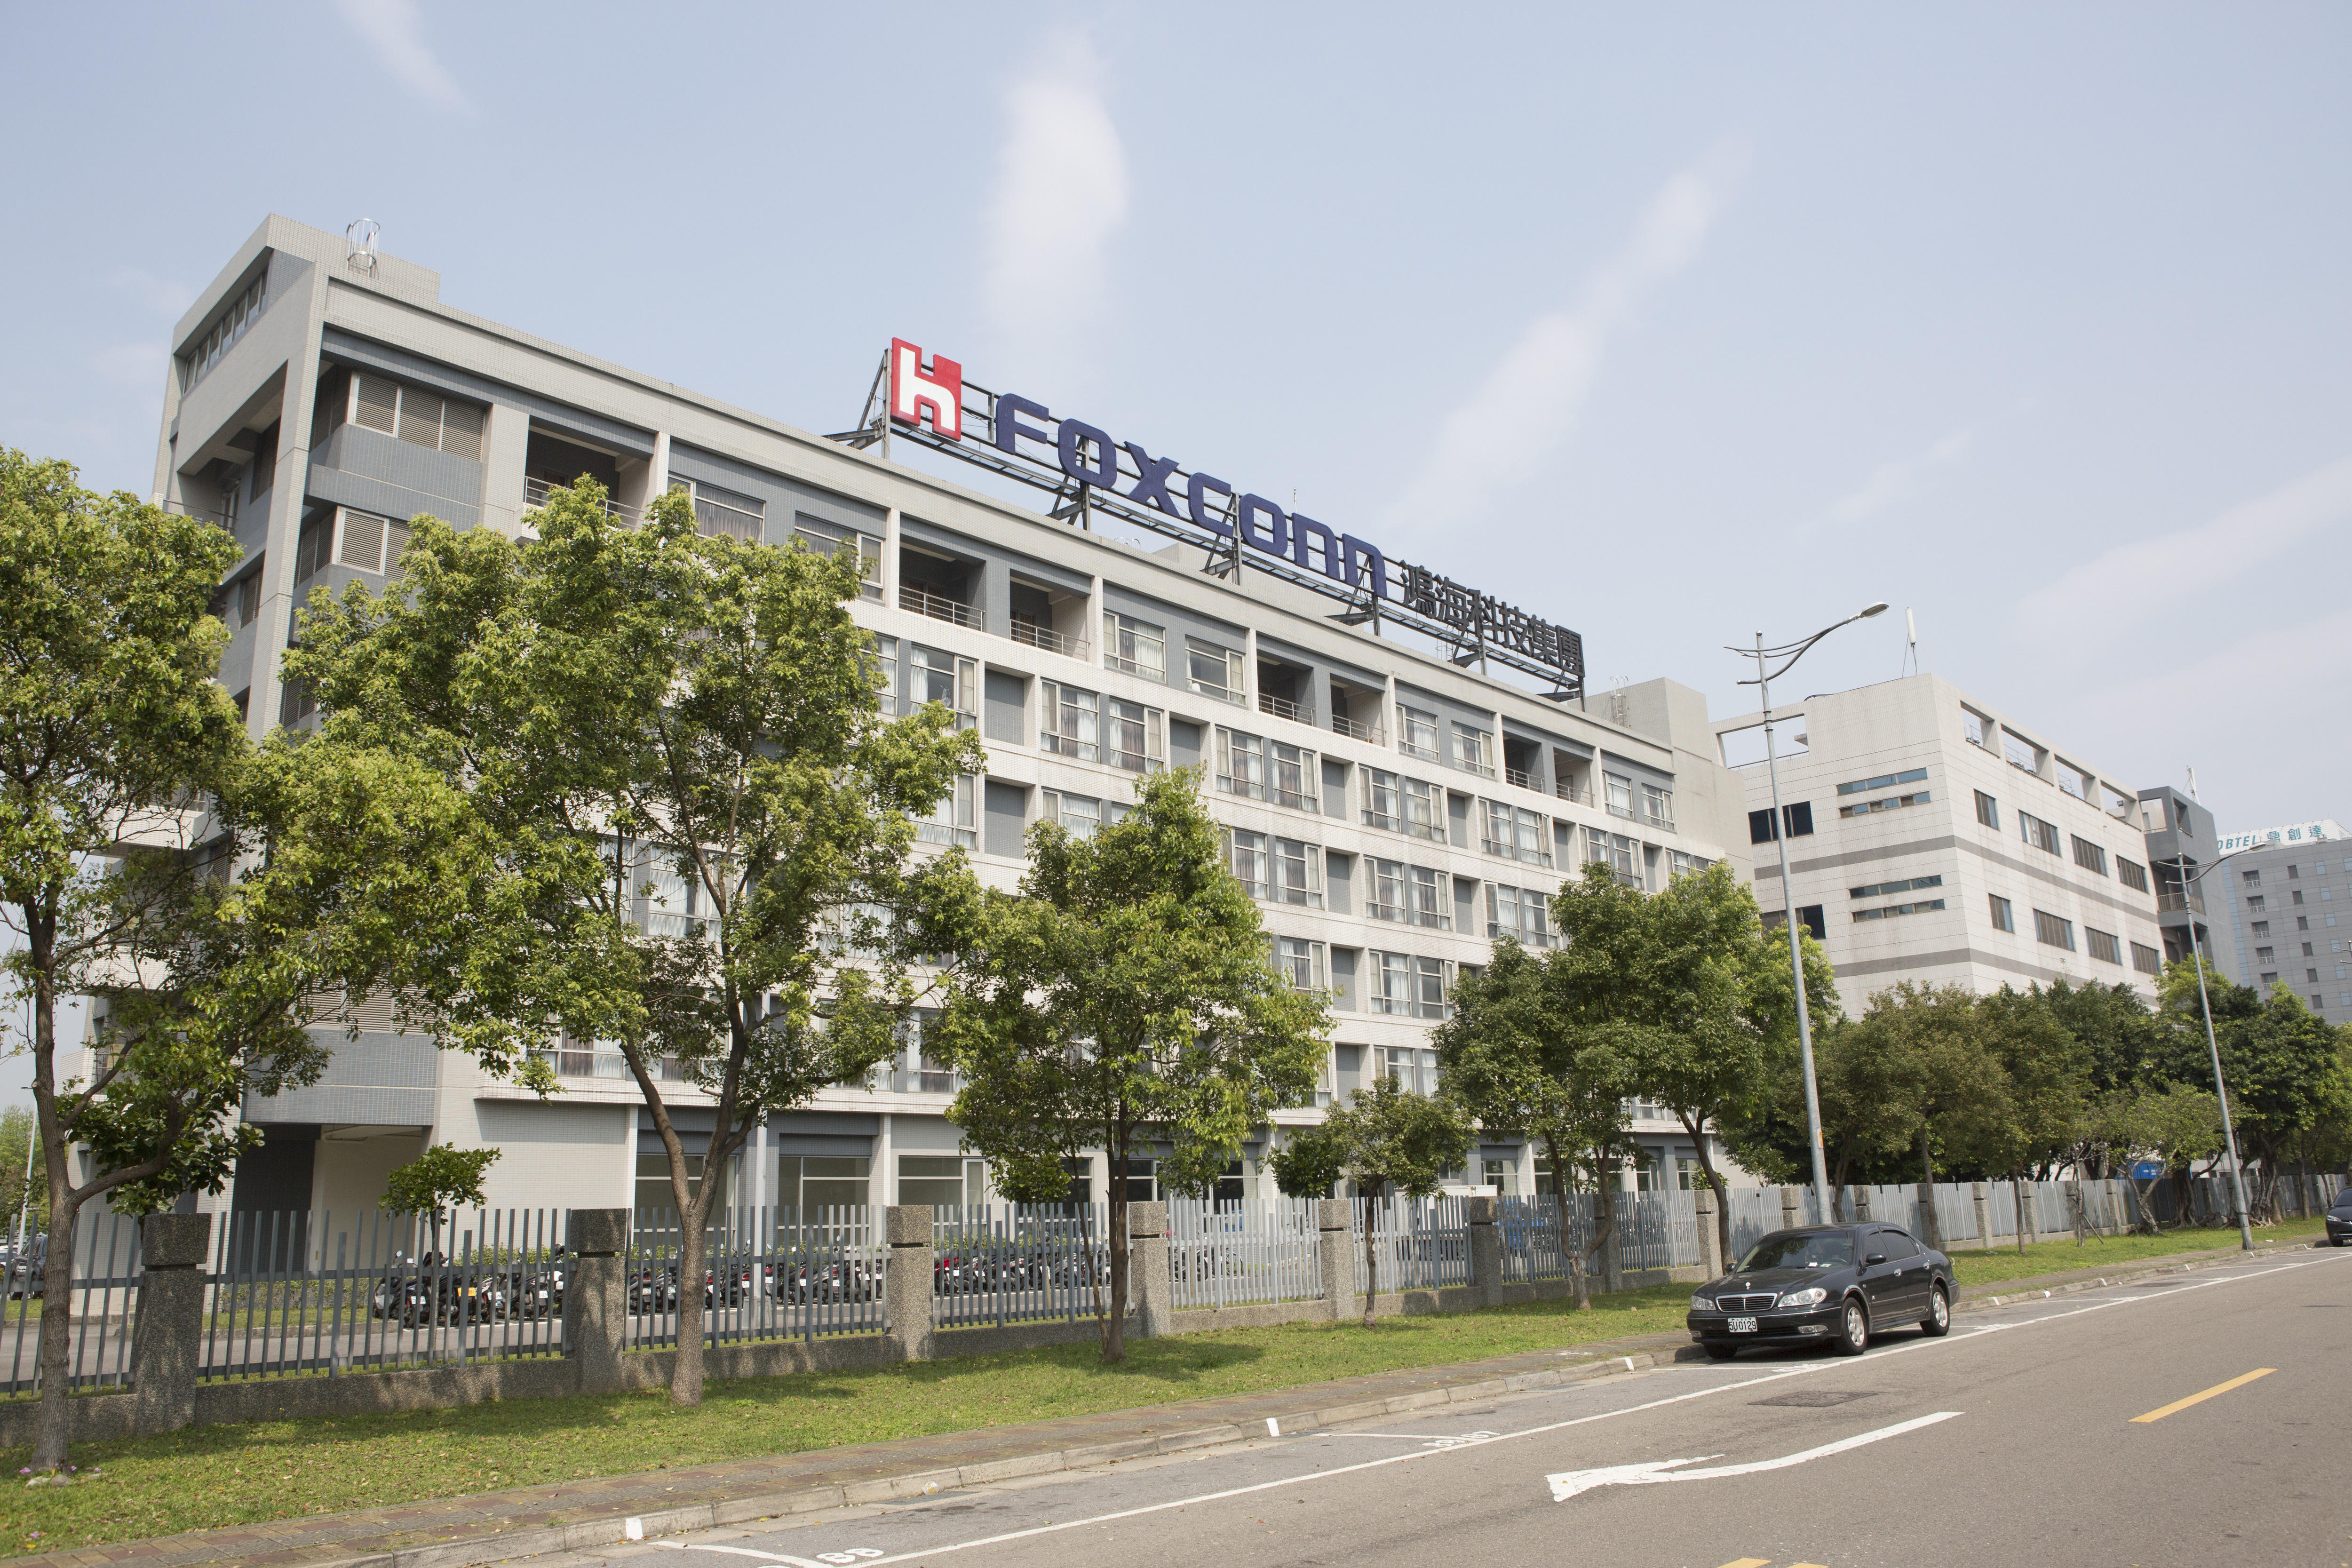 The headquarters of Foxconn (Hon Hai Precision Industry Co